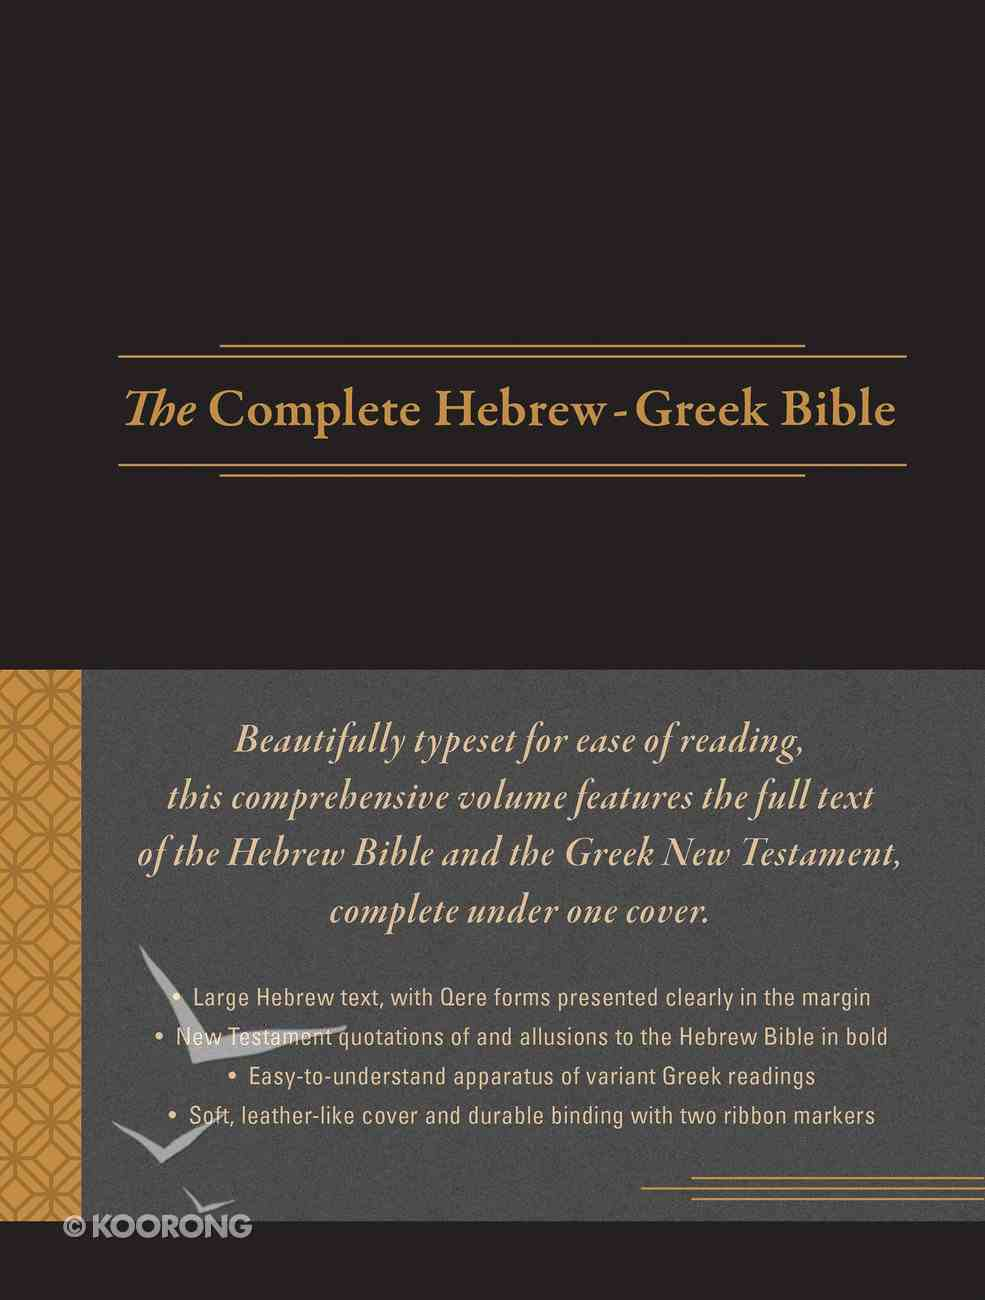 The Complete Hebrew-Greek Bible Imitation Leather